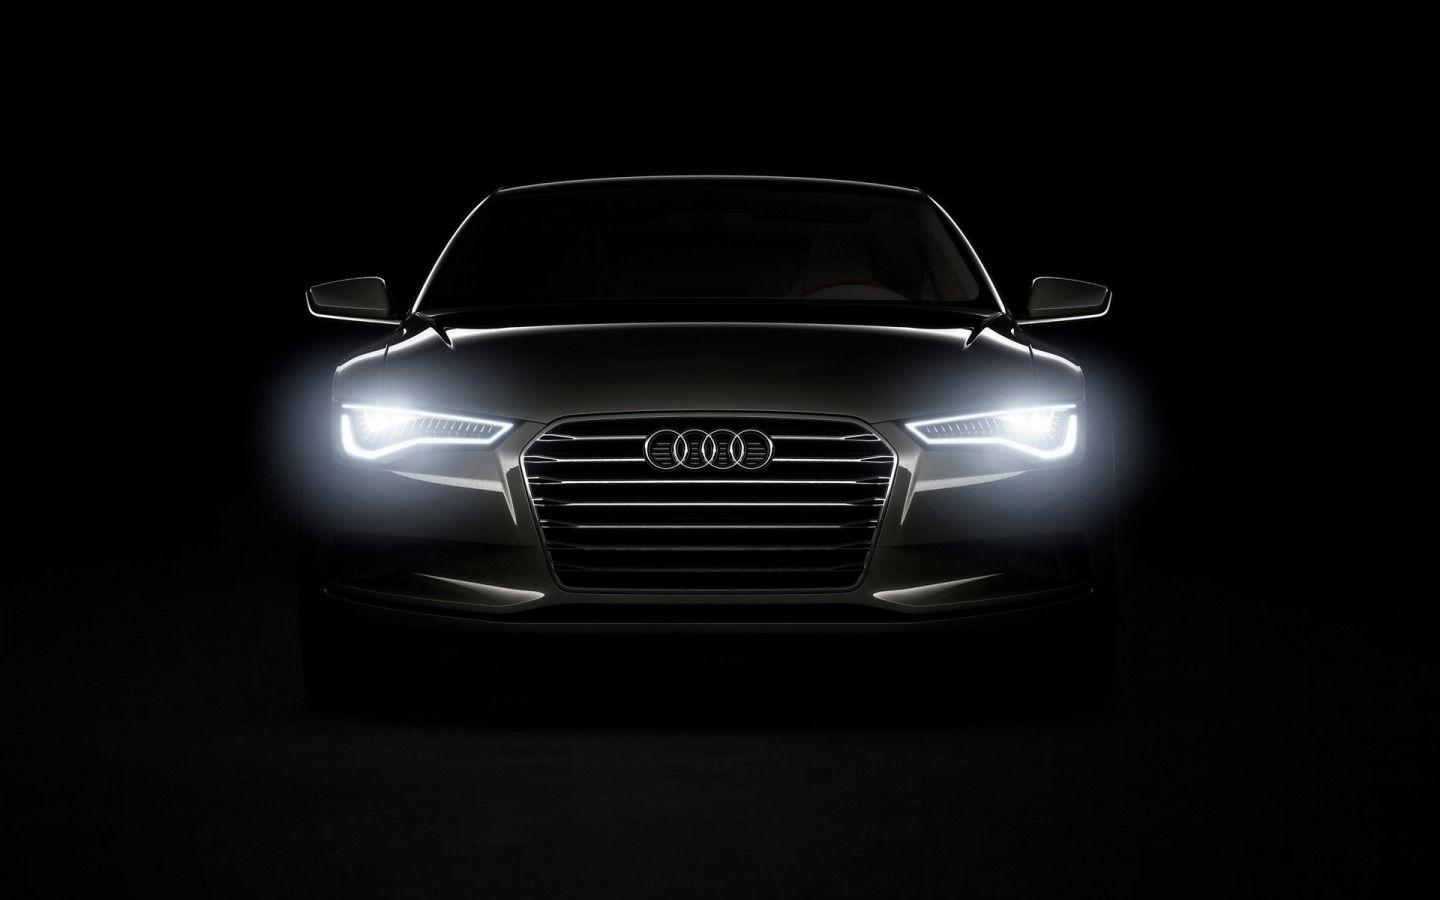 Audi A7 Concept Wallpapers Audi Cars Wallpapers in jpg format for